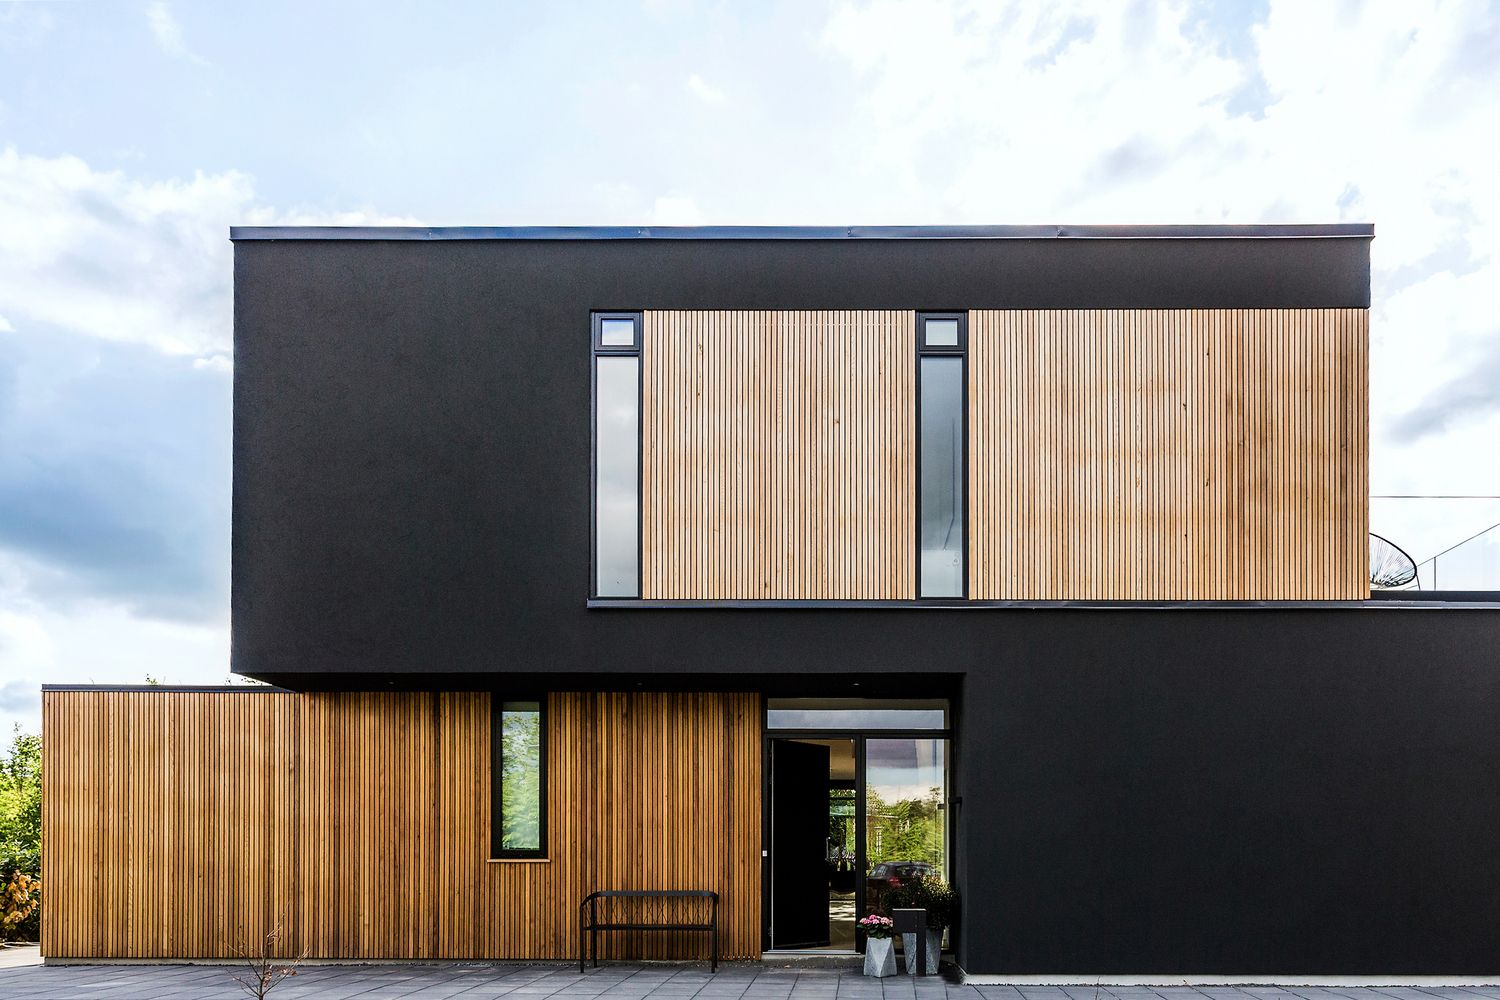 Gallery of Villa S / N+P ARCHITECTS - 1 | Fassaden, Flachdach und ...